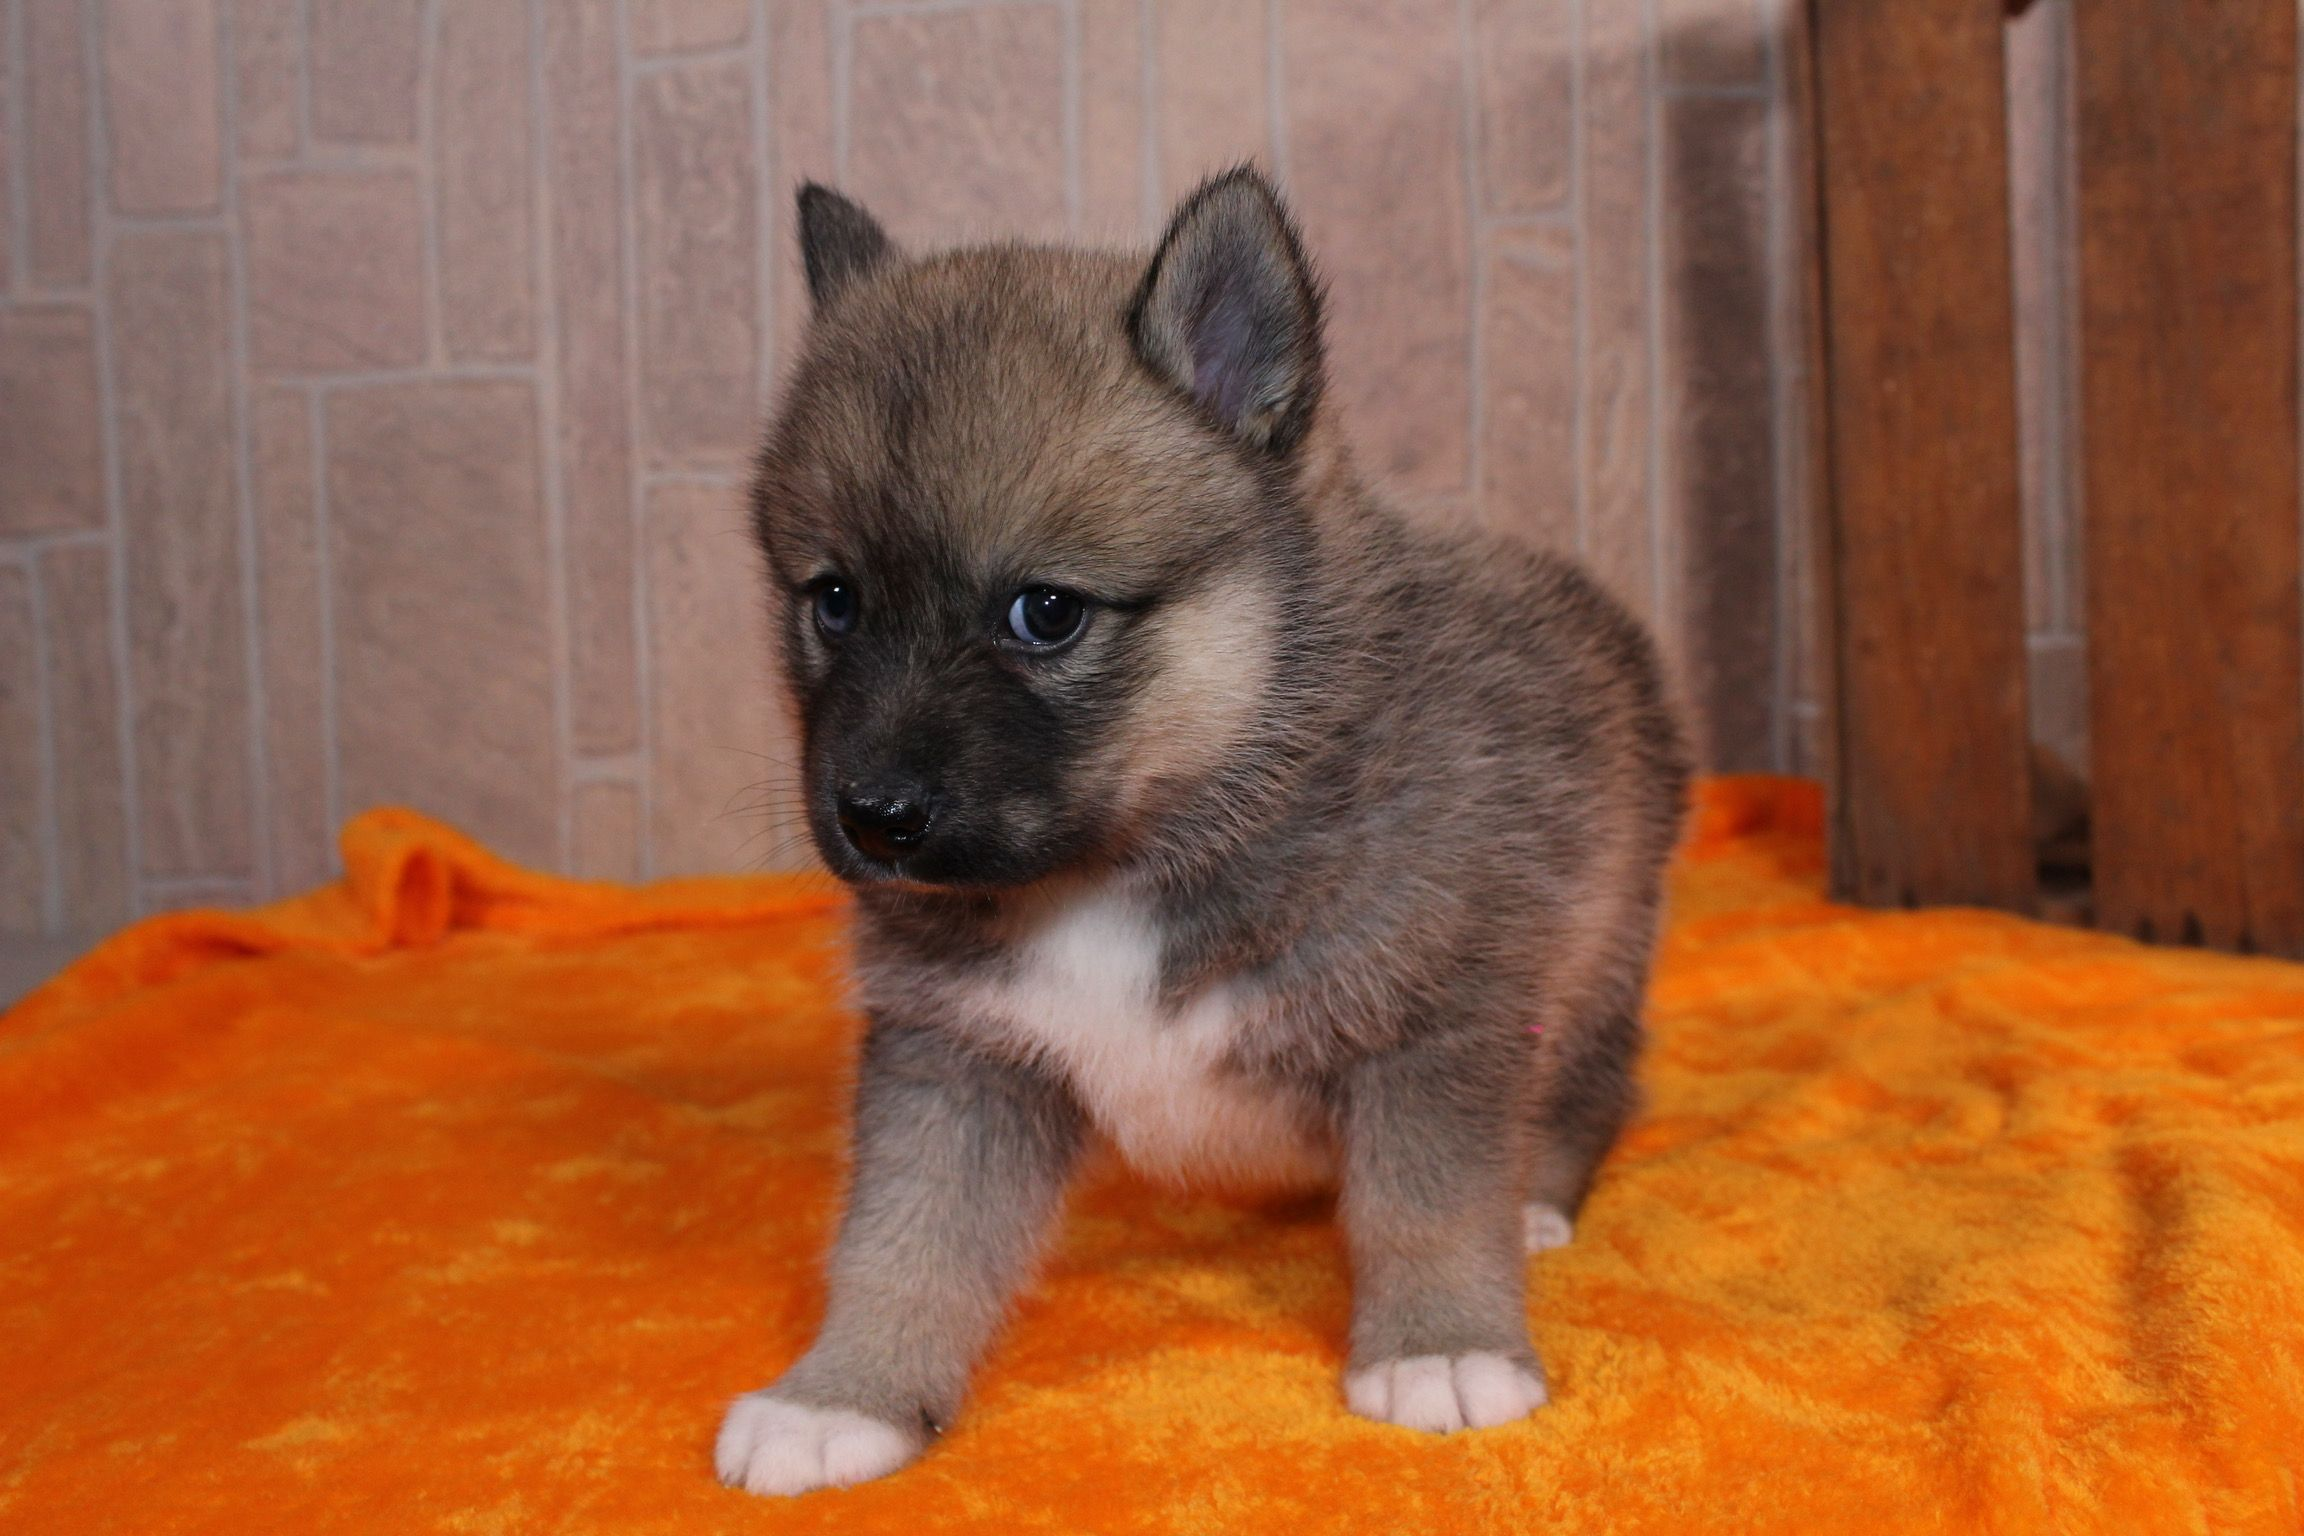 Alex A Family Raised Ckc Male Pomsky Pupper In Nappanee Indiana Find Cute Pomsky Puppies And Responsible Pomsky Br Puppies Pomsky Puppies Cute Baby Animals